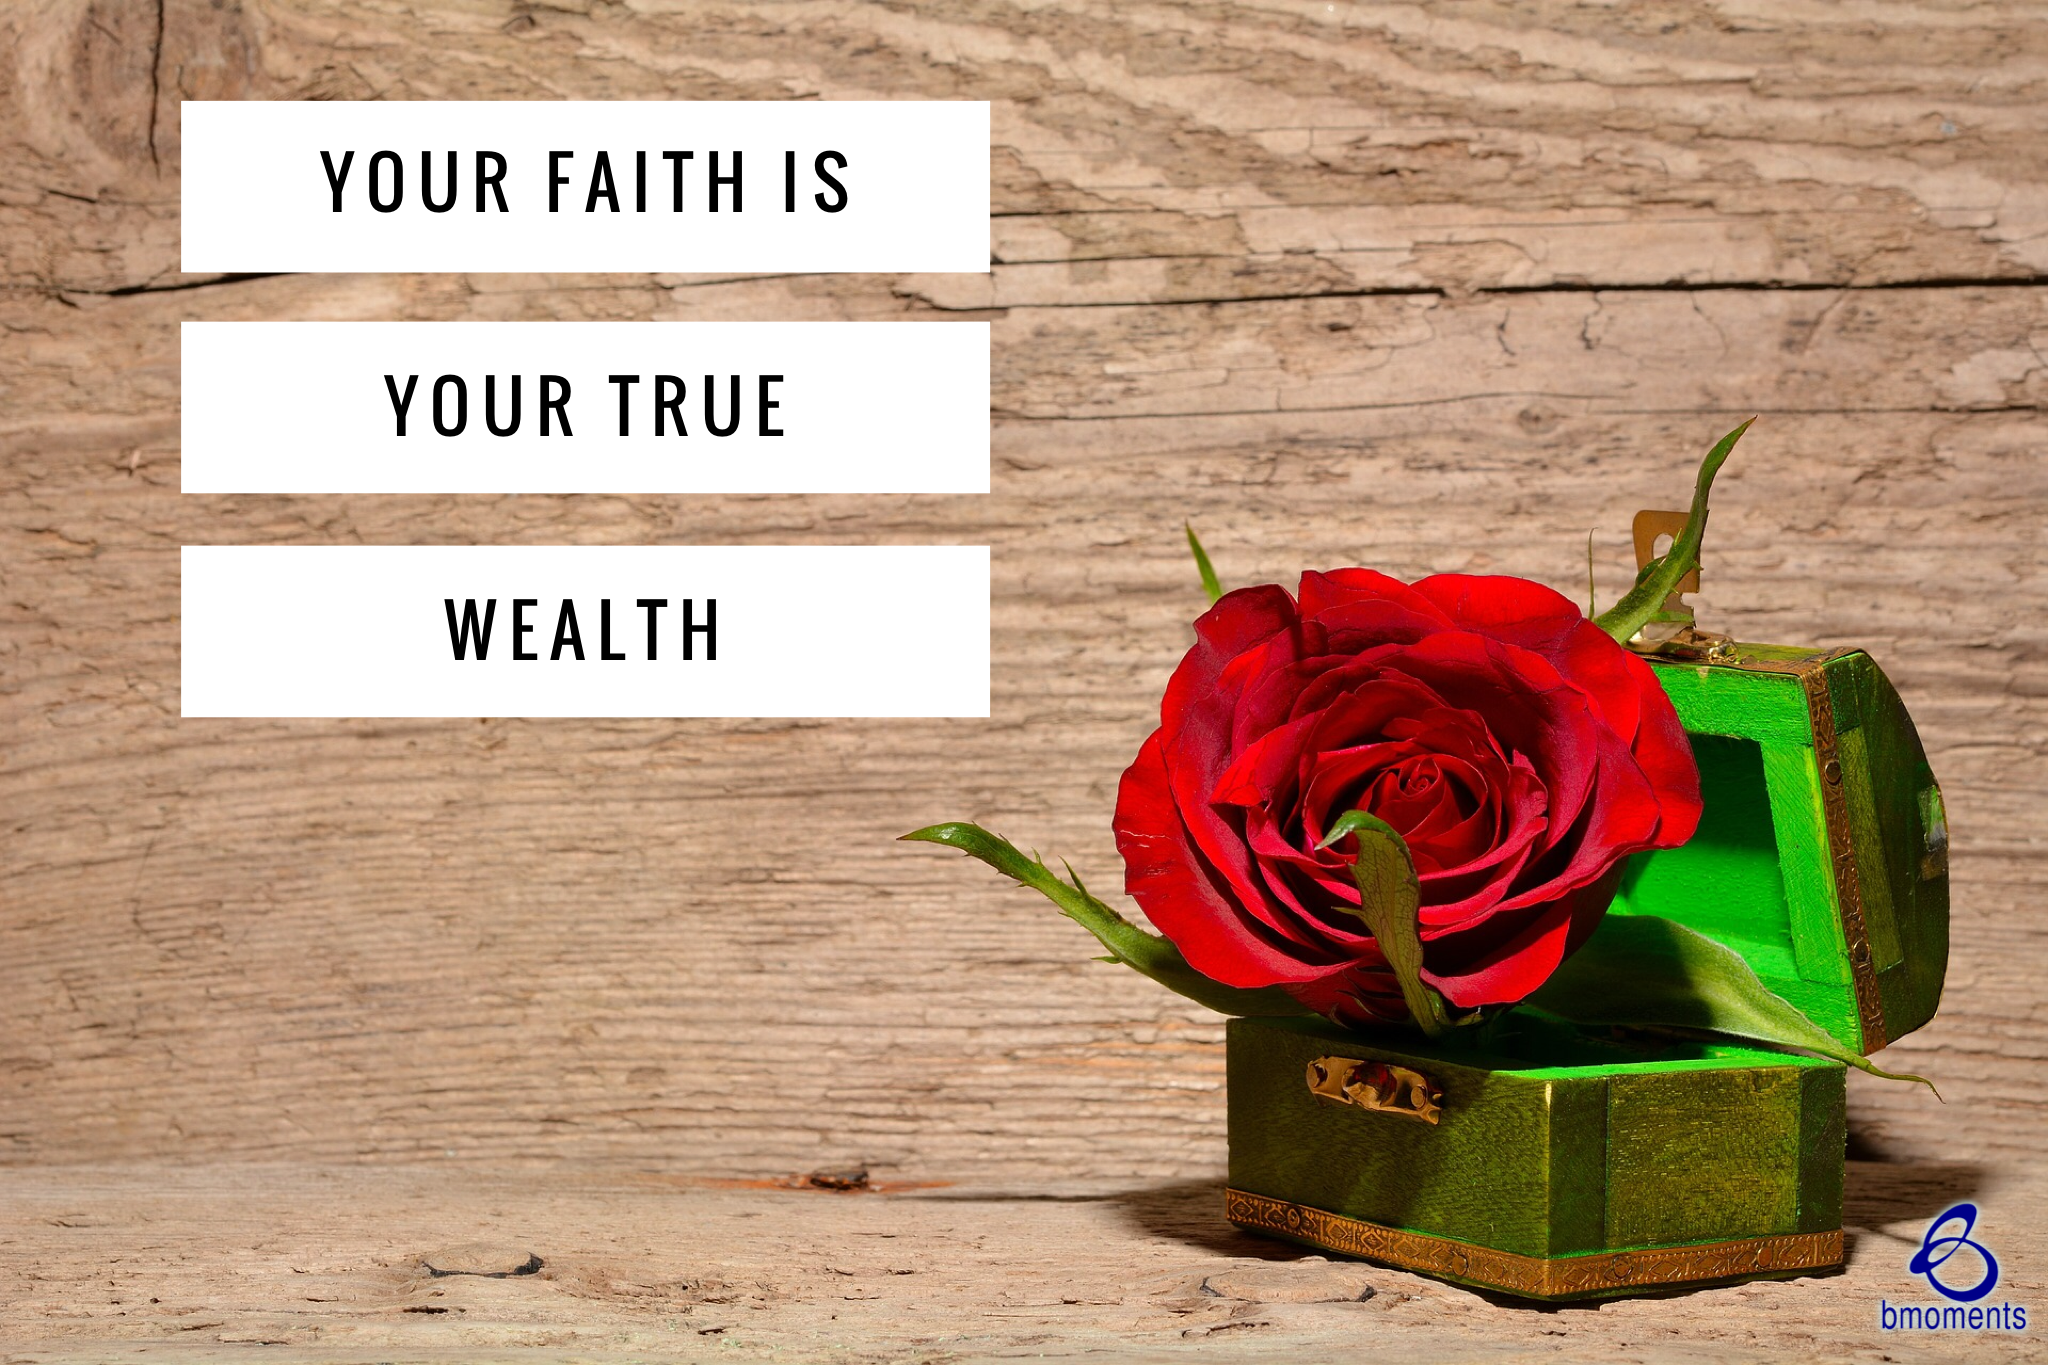 Are Your Treasures and Heart Aligned?